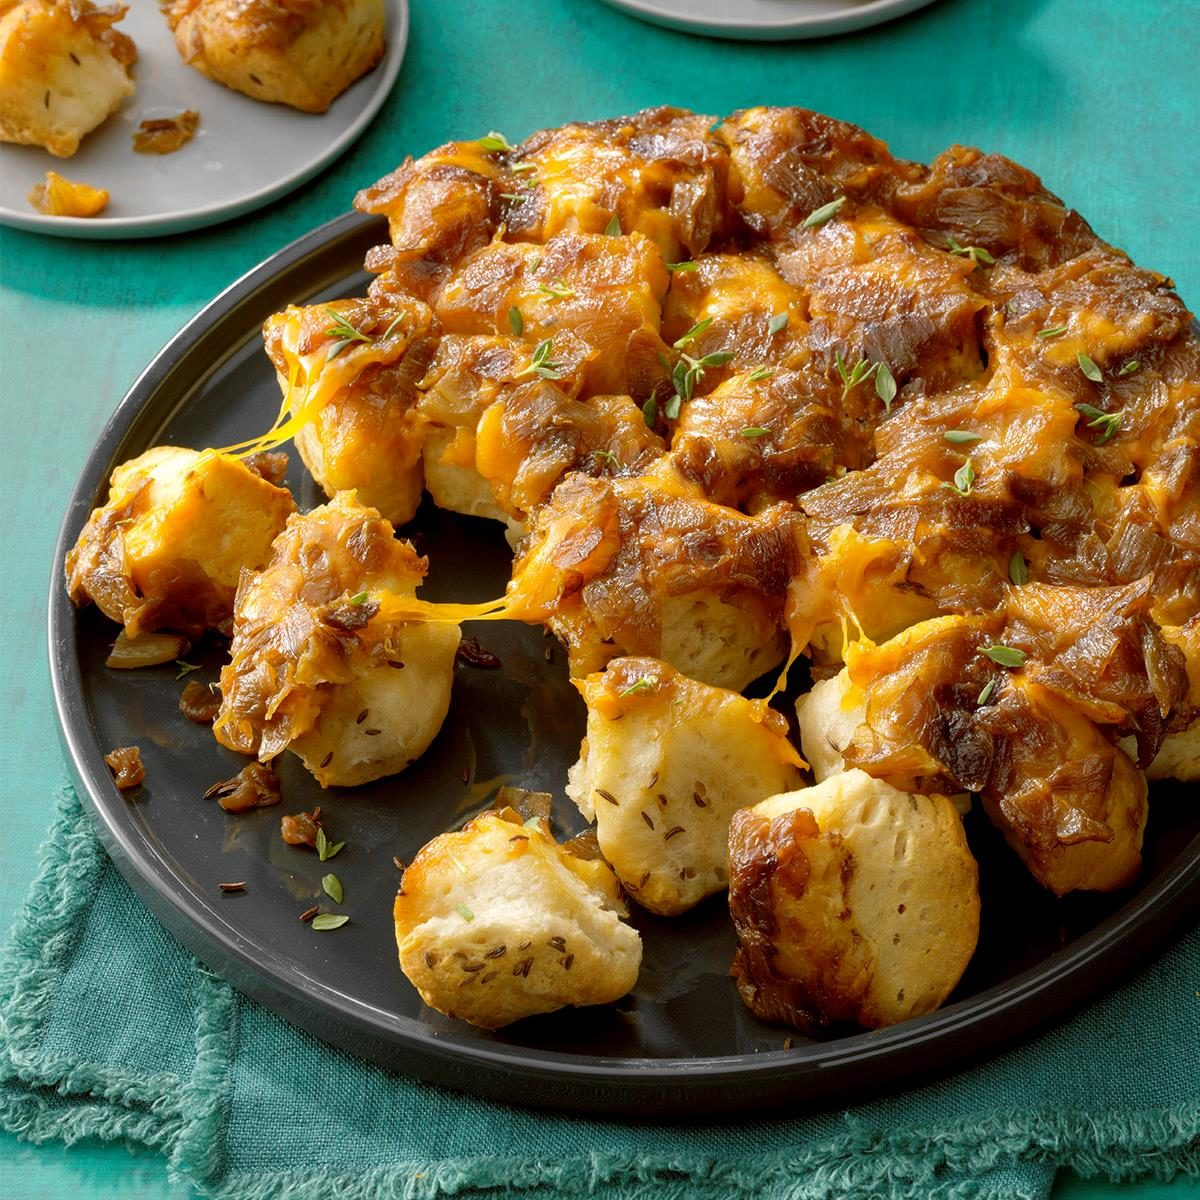 1st Place: Cheesy Caramelized Onion Skillet Bread